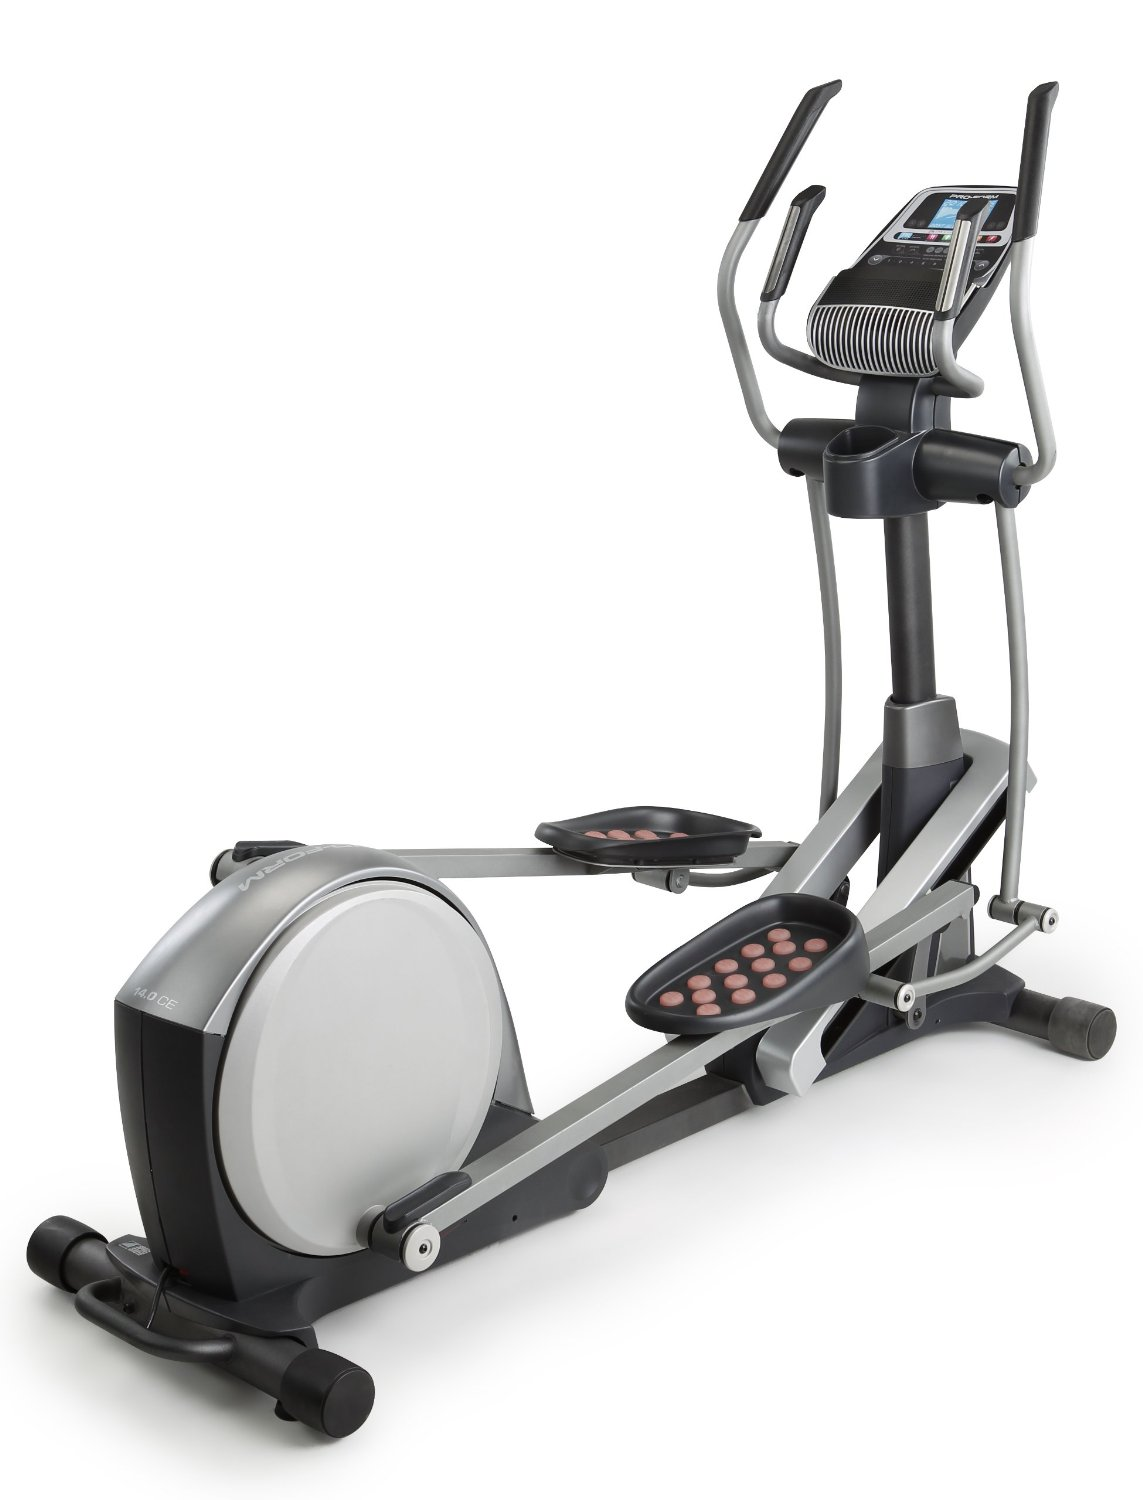 Proform 14.0 CE Elliptical Review